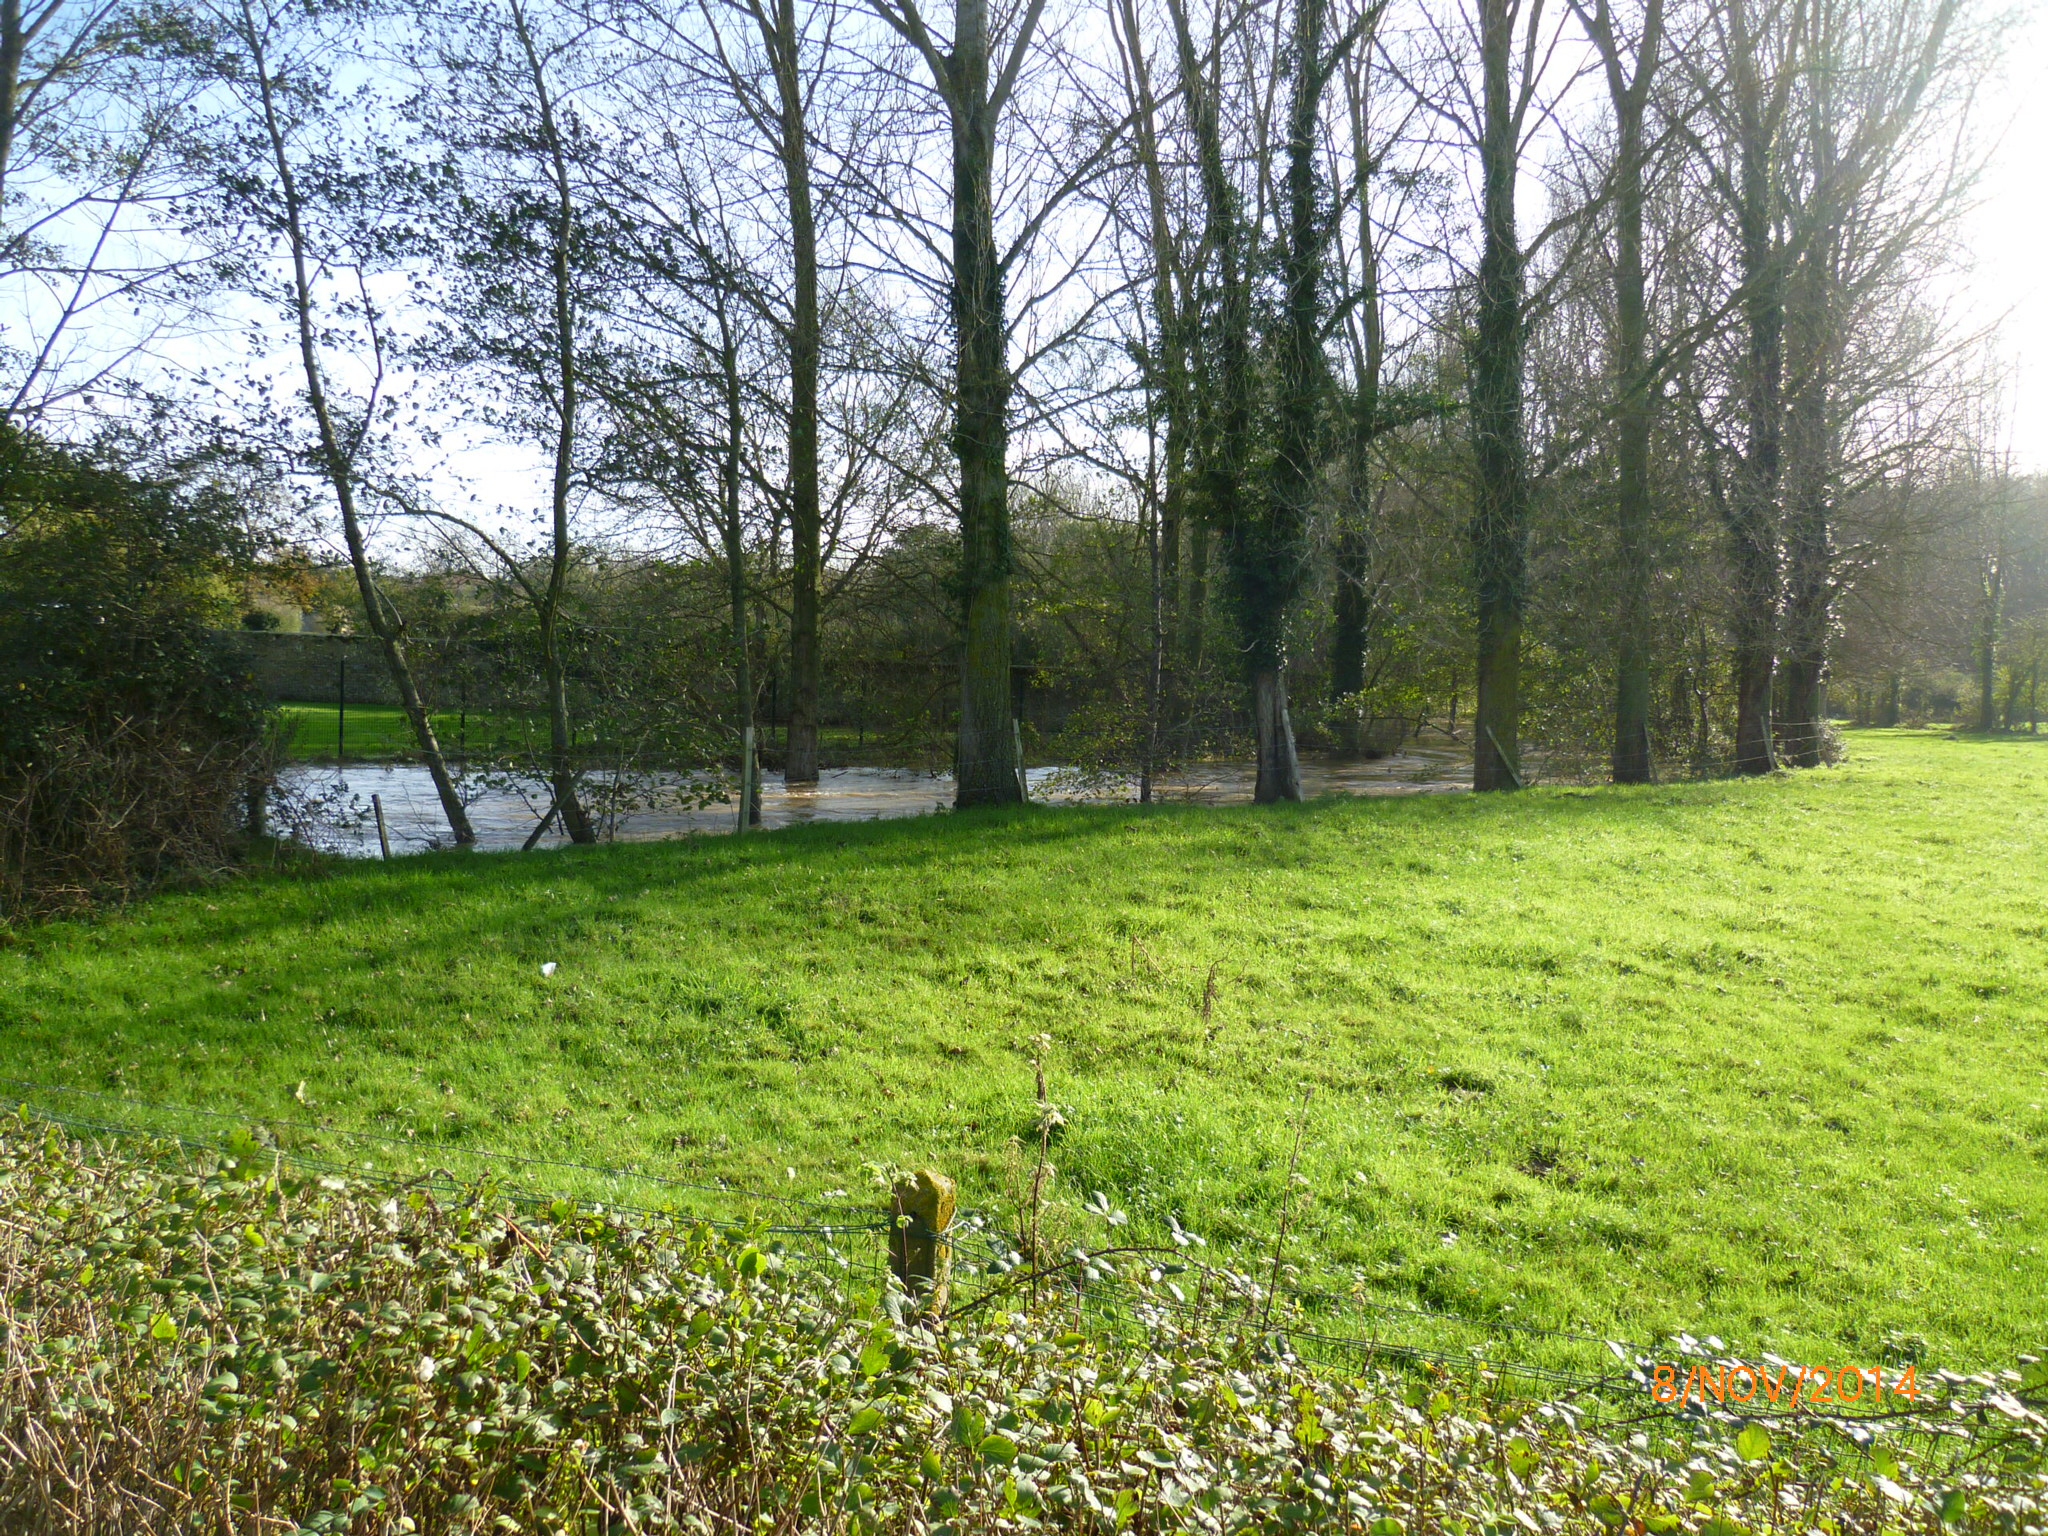 W20141108_Wimille pont mairie 1405